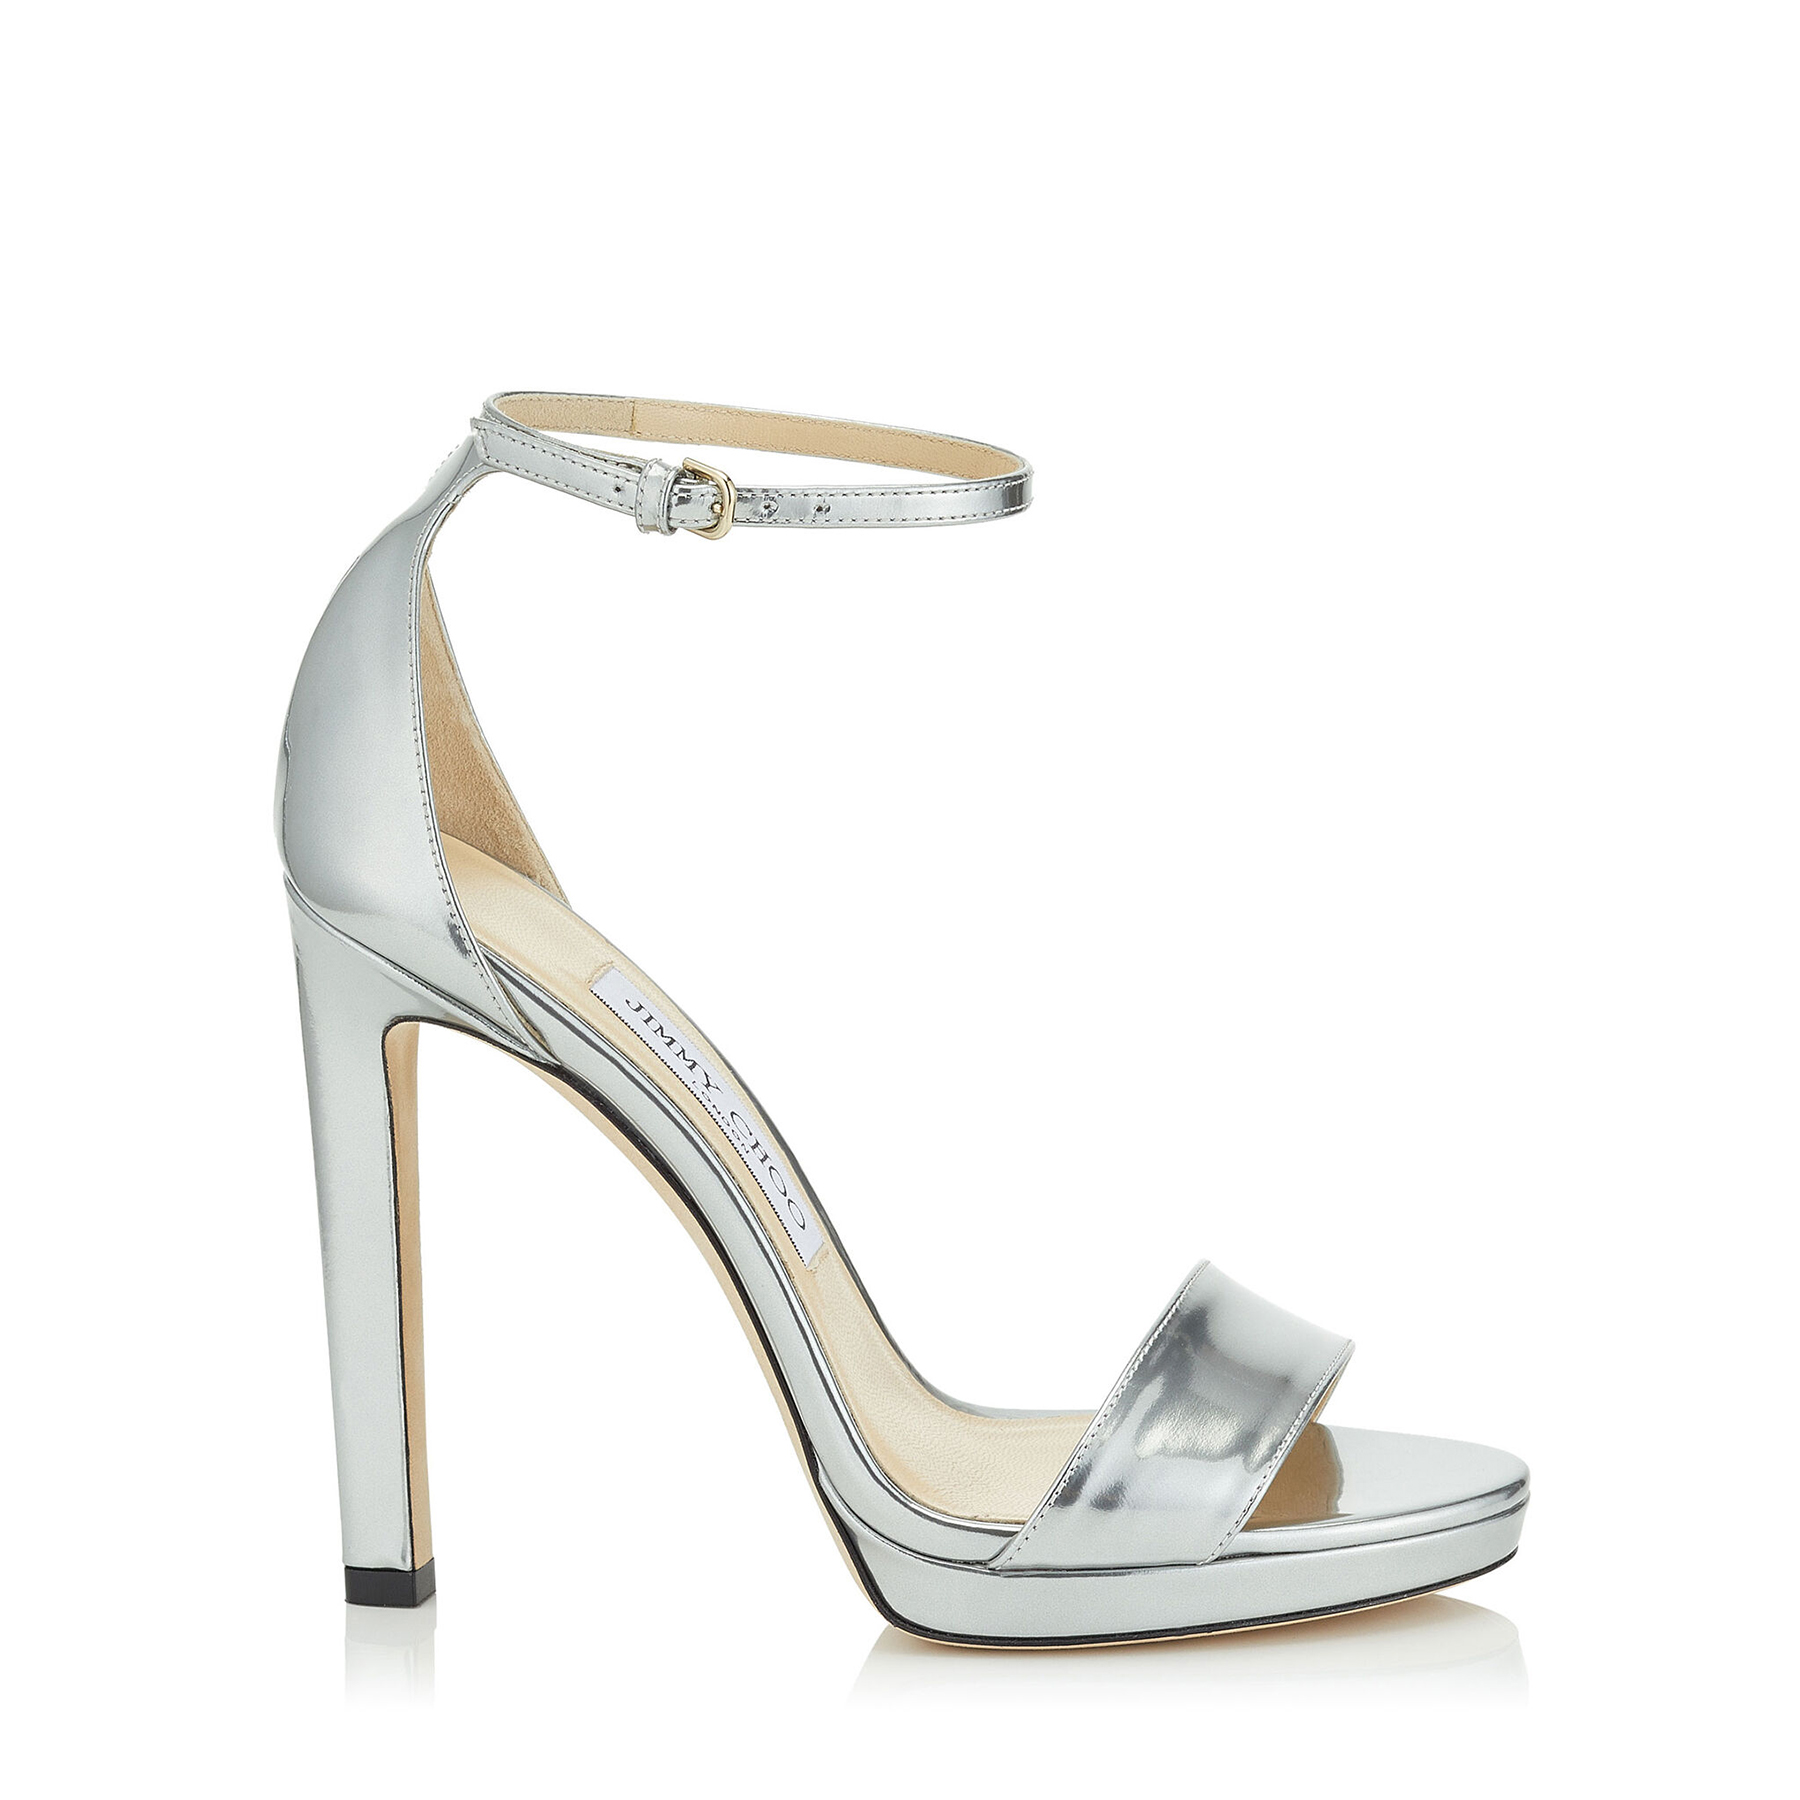 MISTY 120 Silver Liquid Mirror Leather Platform Sandals by Jimmy Choo